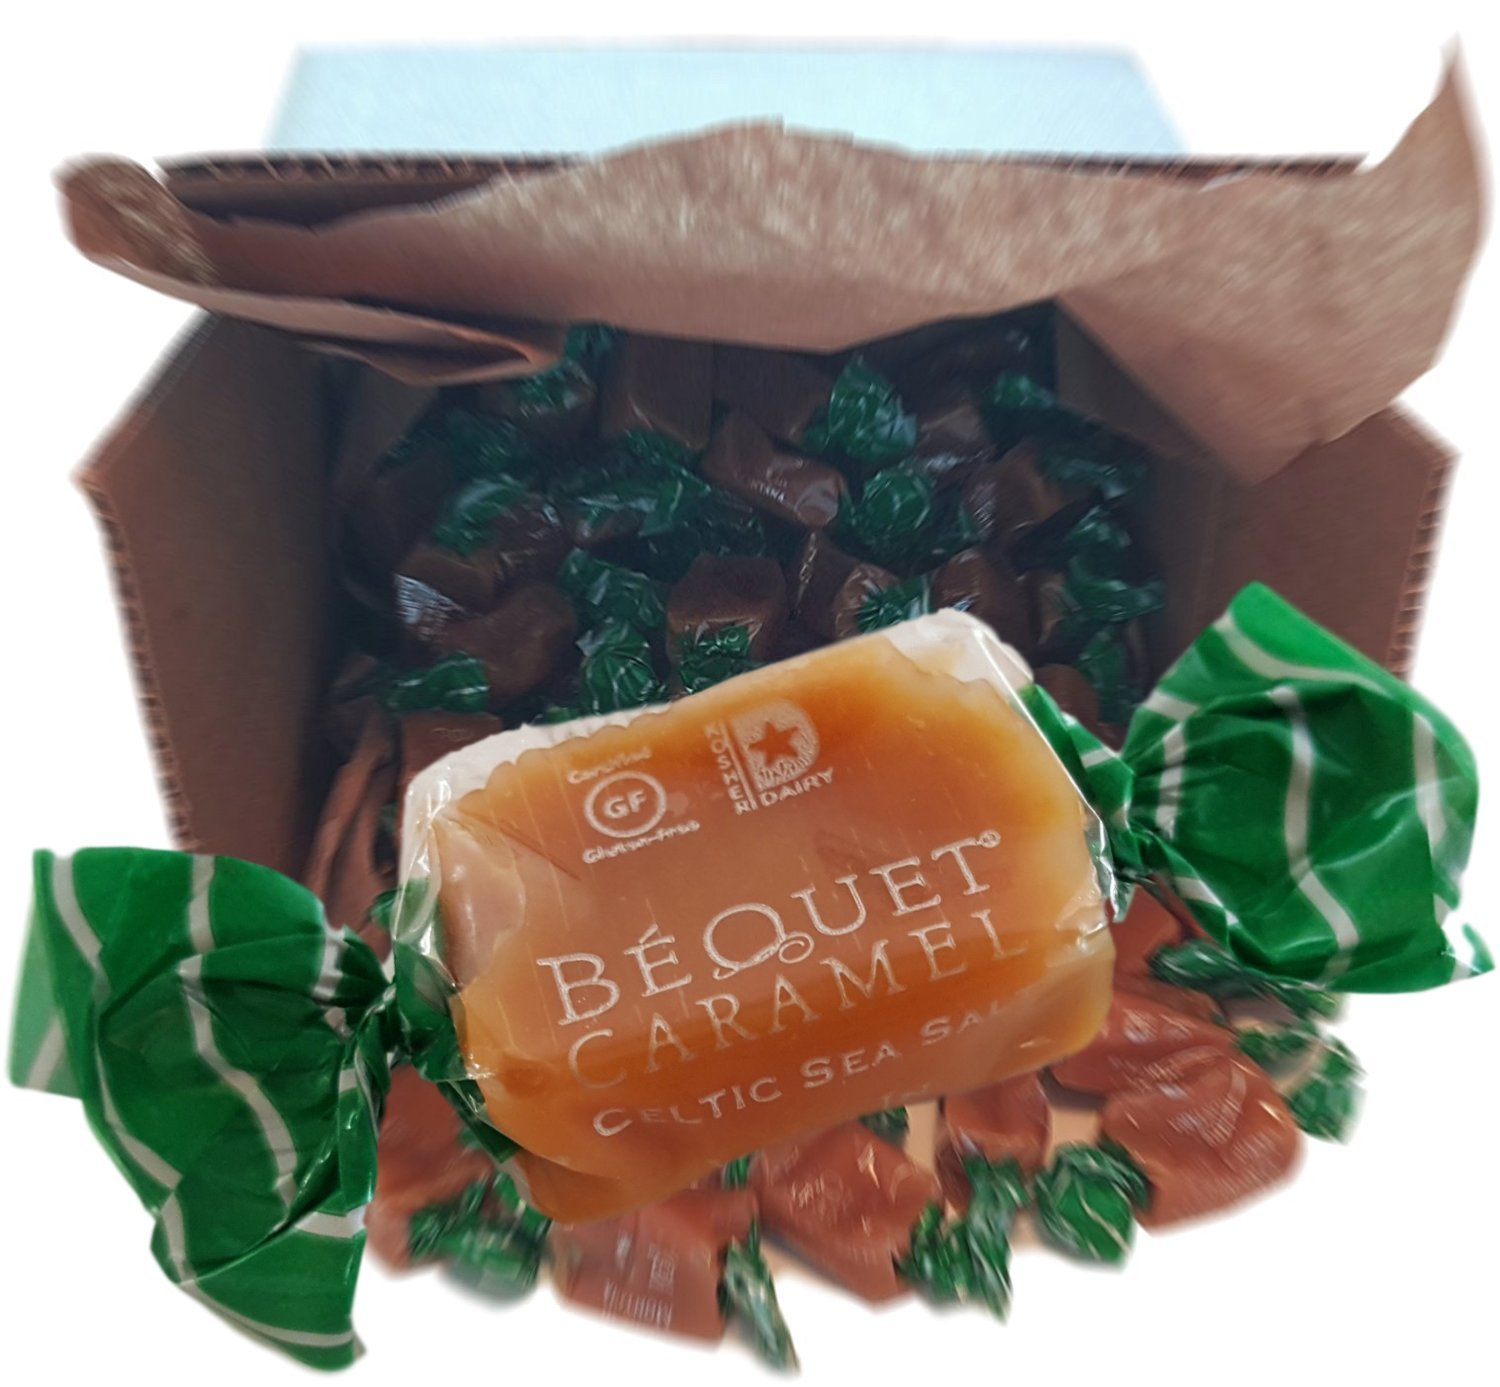 Bequet Gourmet Caramel - Big Box of Celtic Sea Salt Caramels - Hand Crafted, Slow Simmered